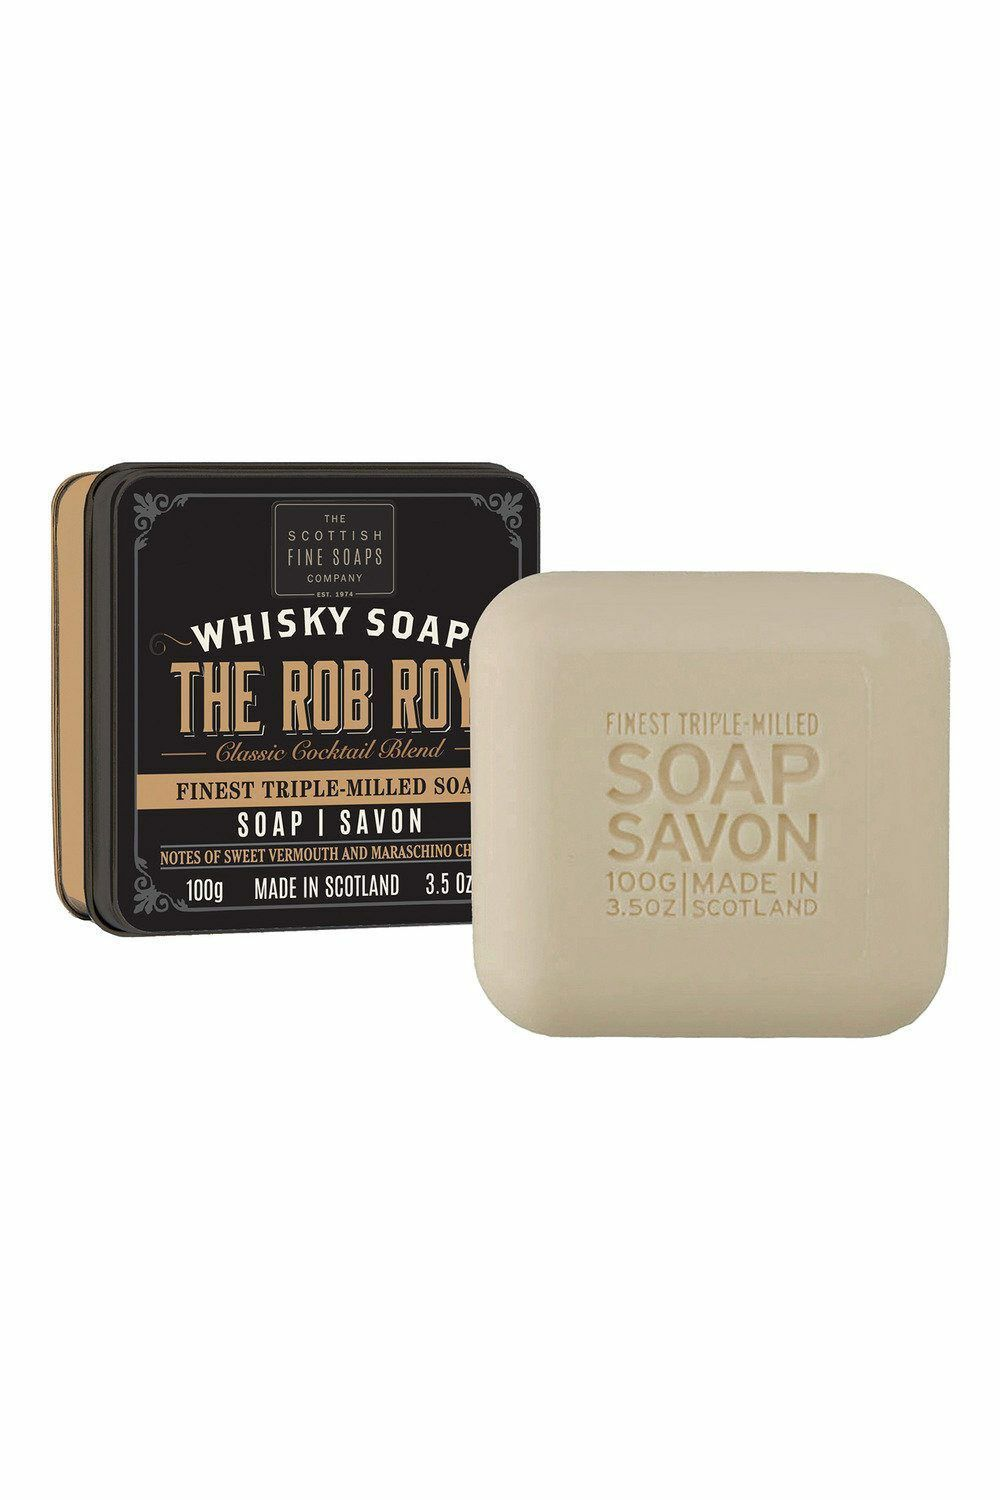 Scottish Fine Soaps Men's Grooming The Rob Roy 100g, Imported from U.K.